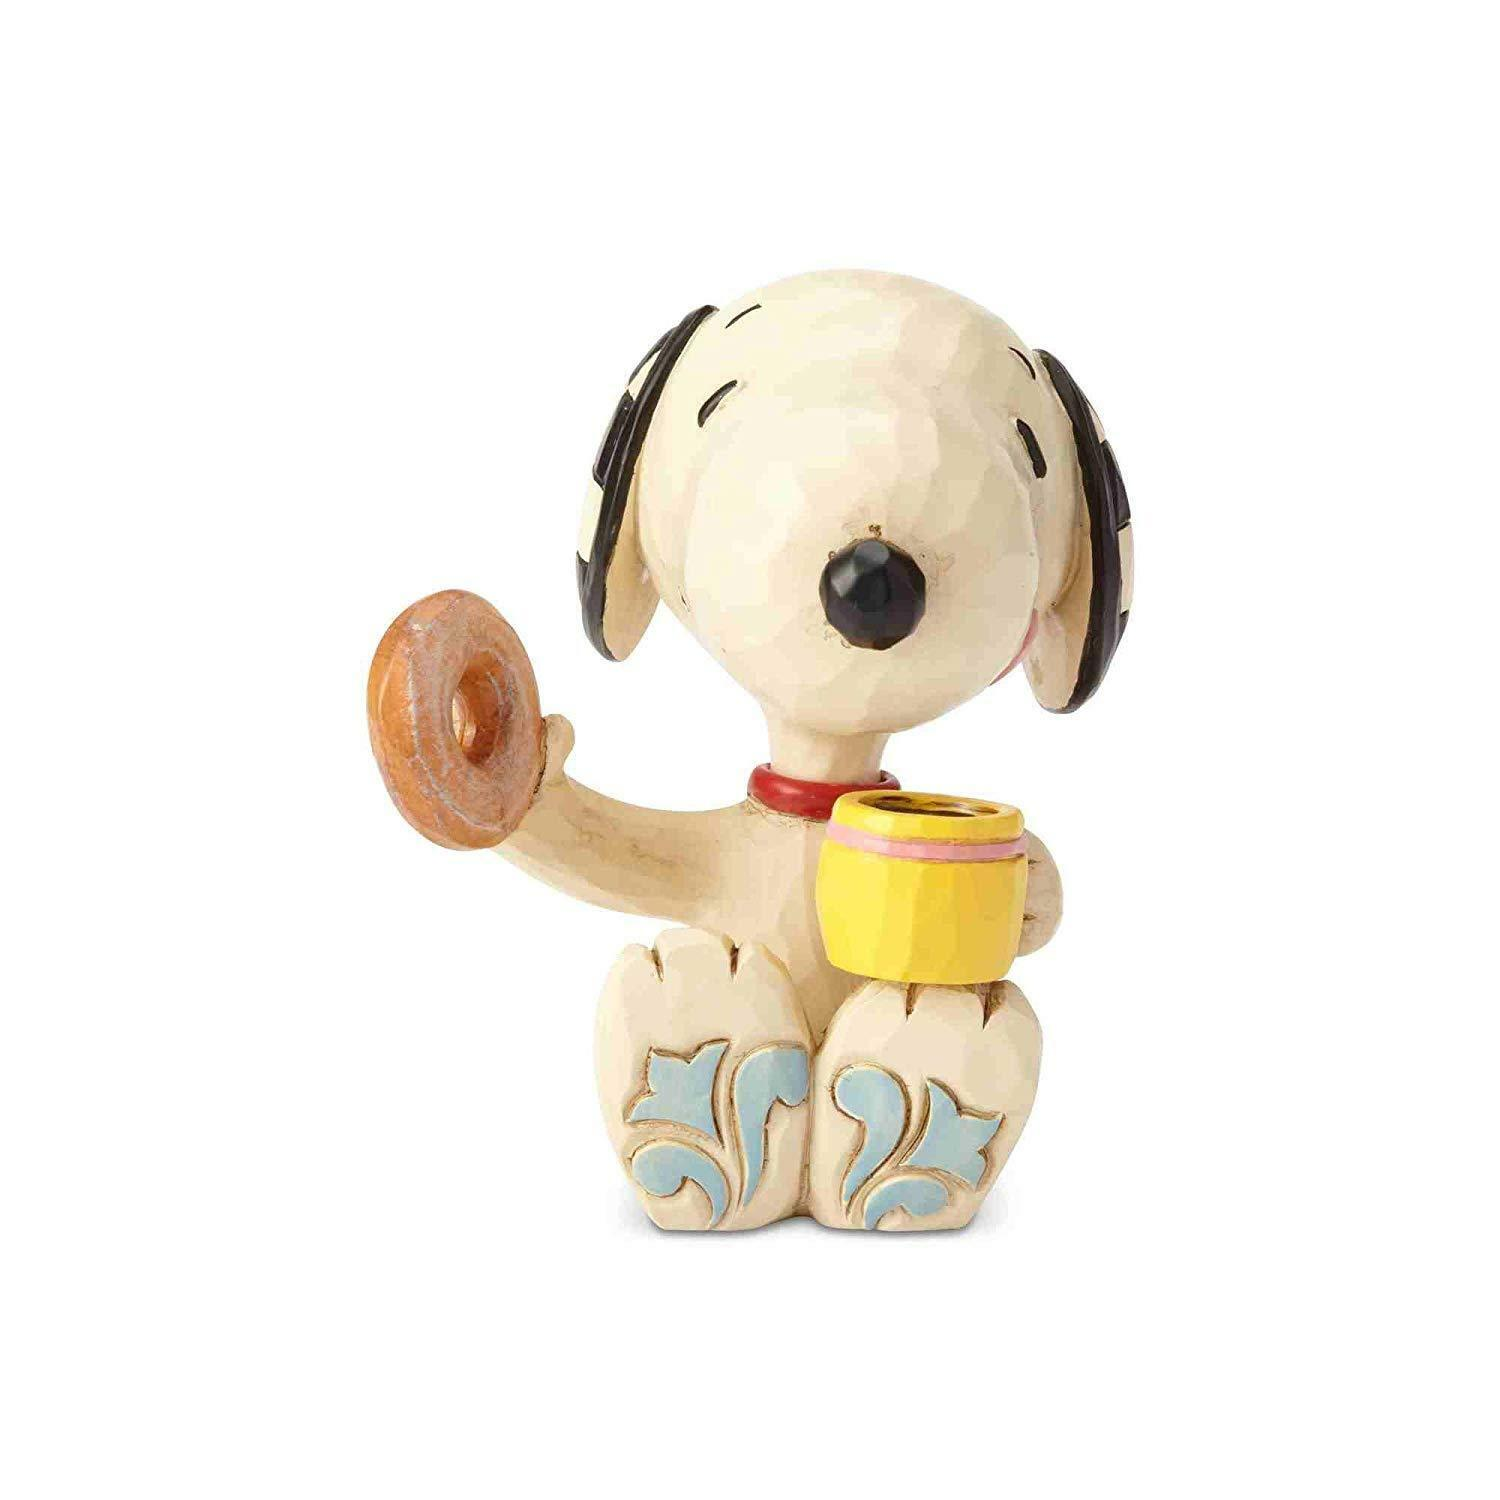 Jim Shore Peanuts Snoopy Donut and Coffee Mini Resin Figurine New with Box